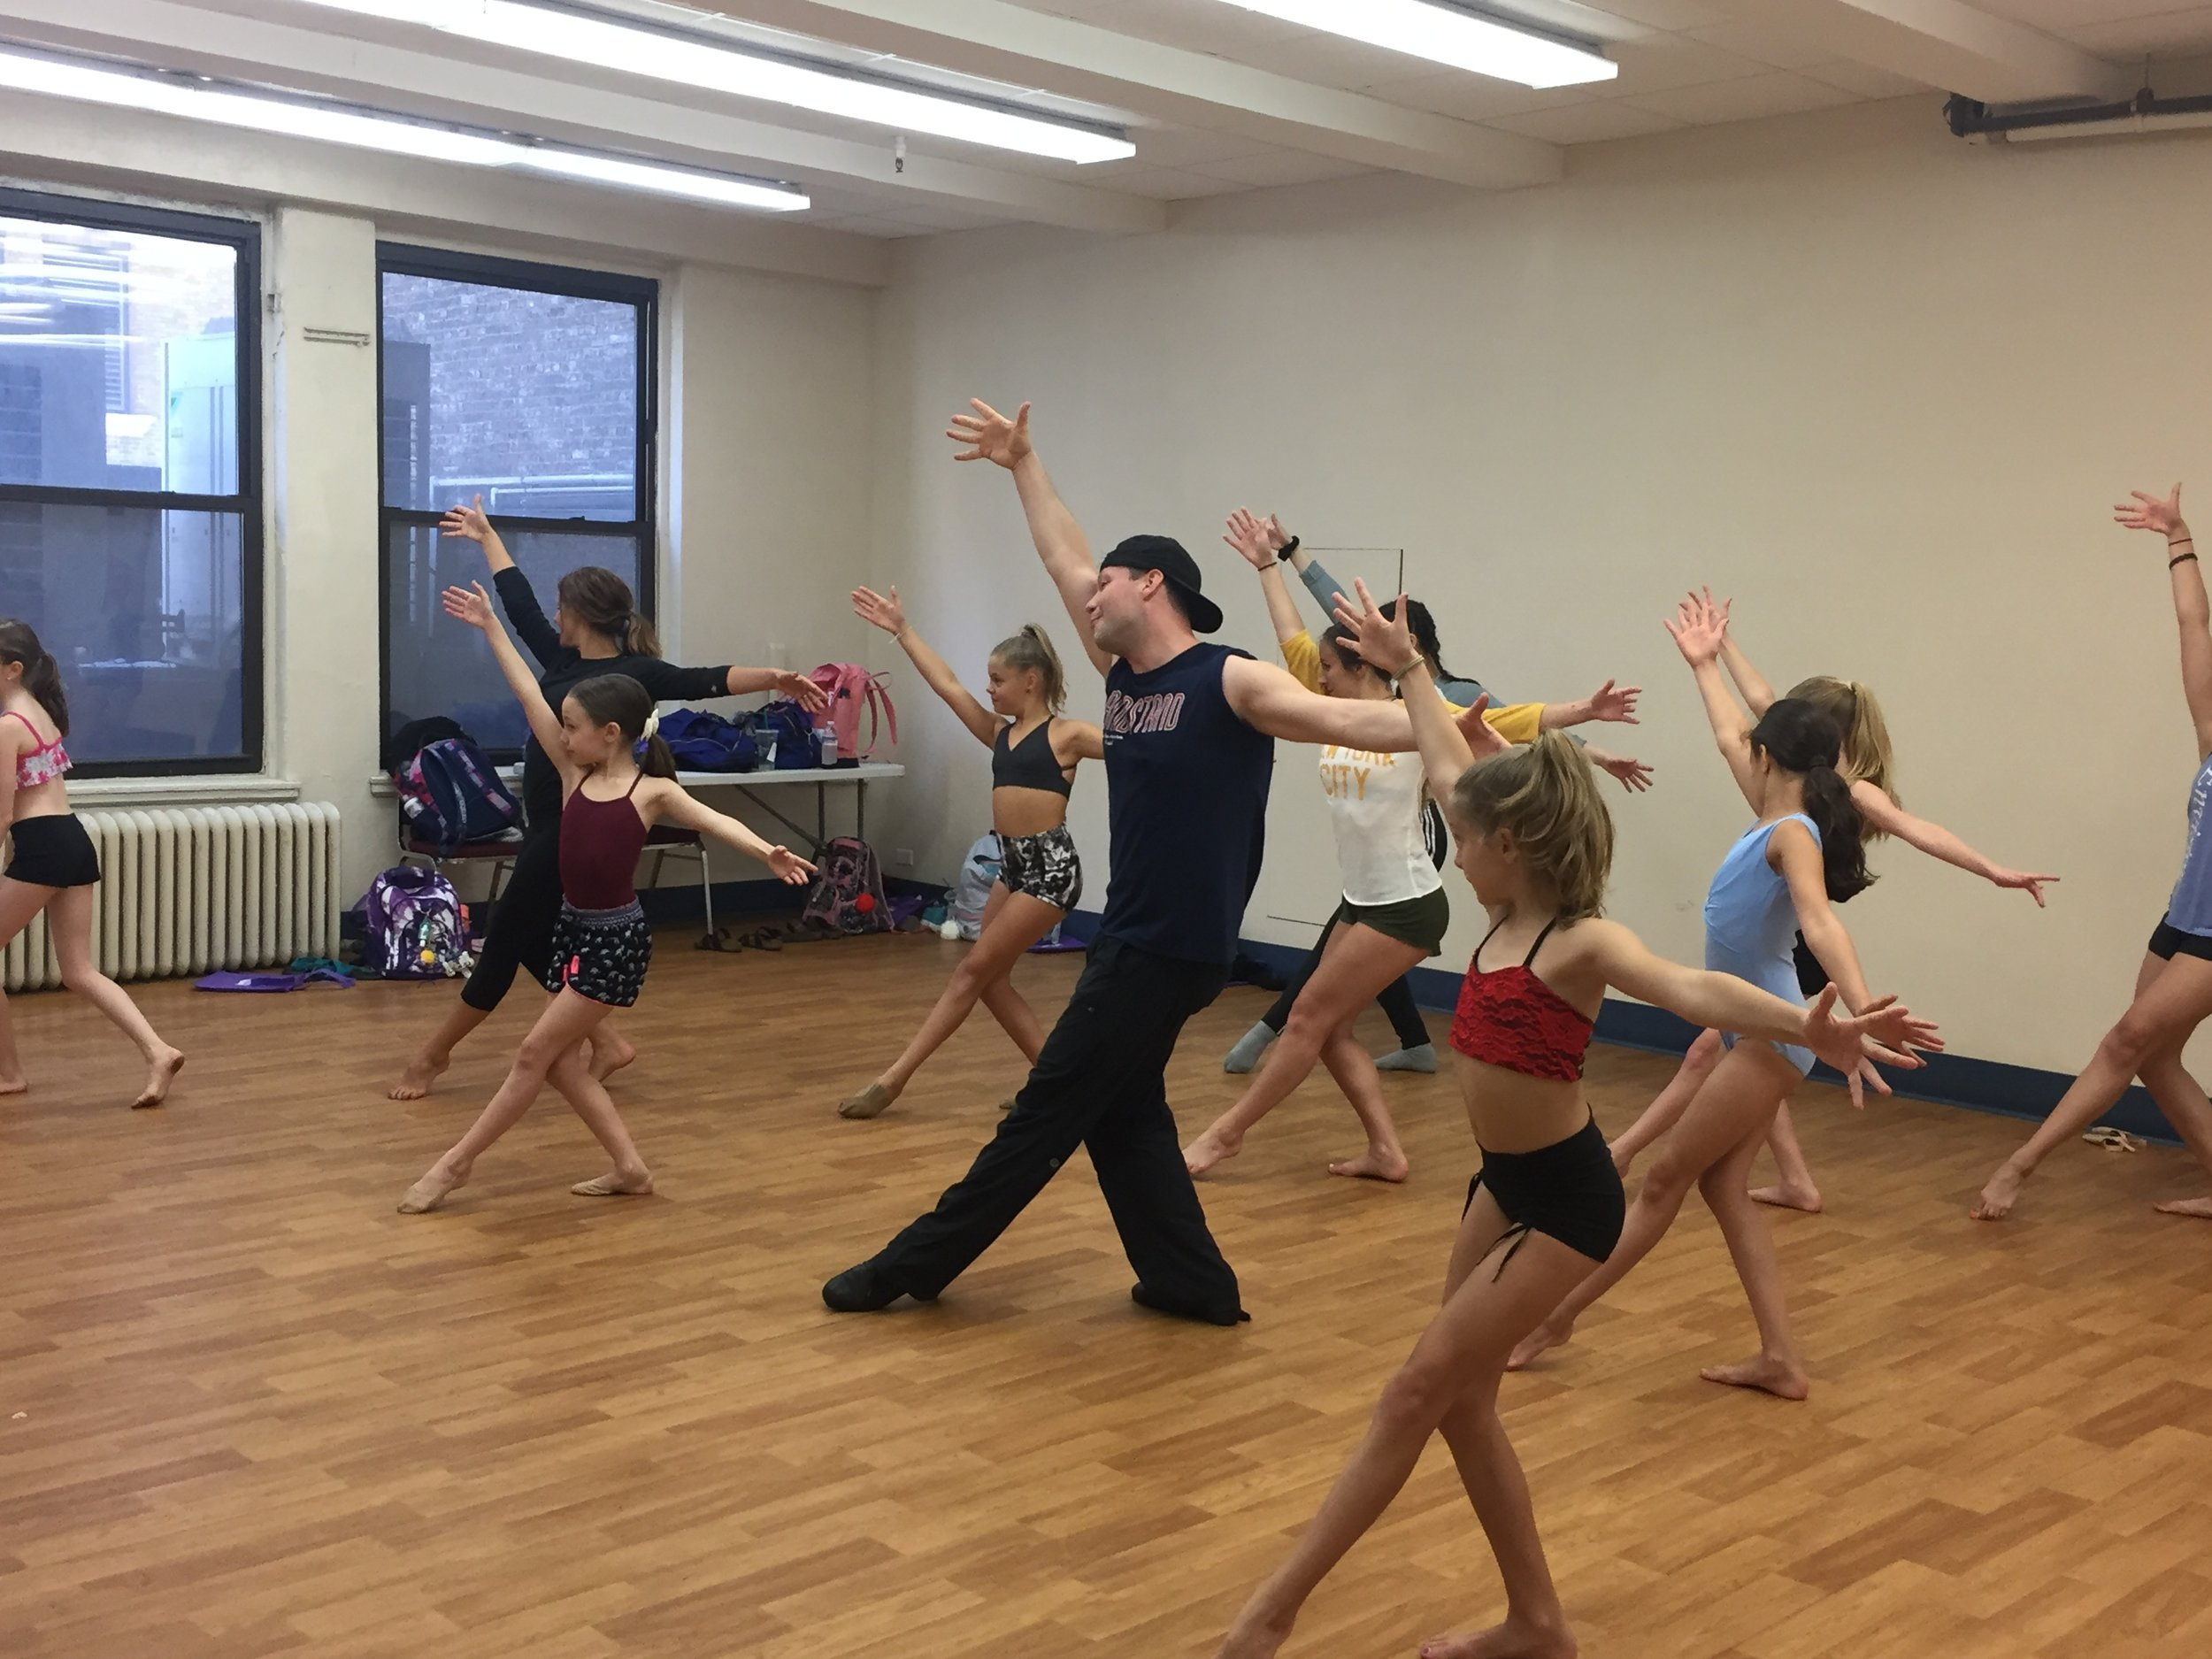 - Your students will have to the opportunity to work with the industry's best teachers as they tour through your area without the added cost of flying in faculty members. This is a truly unique way for students to experience the dance styles used in some of today's top shows.